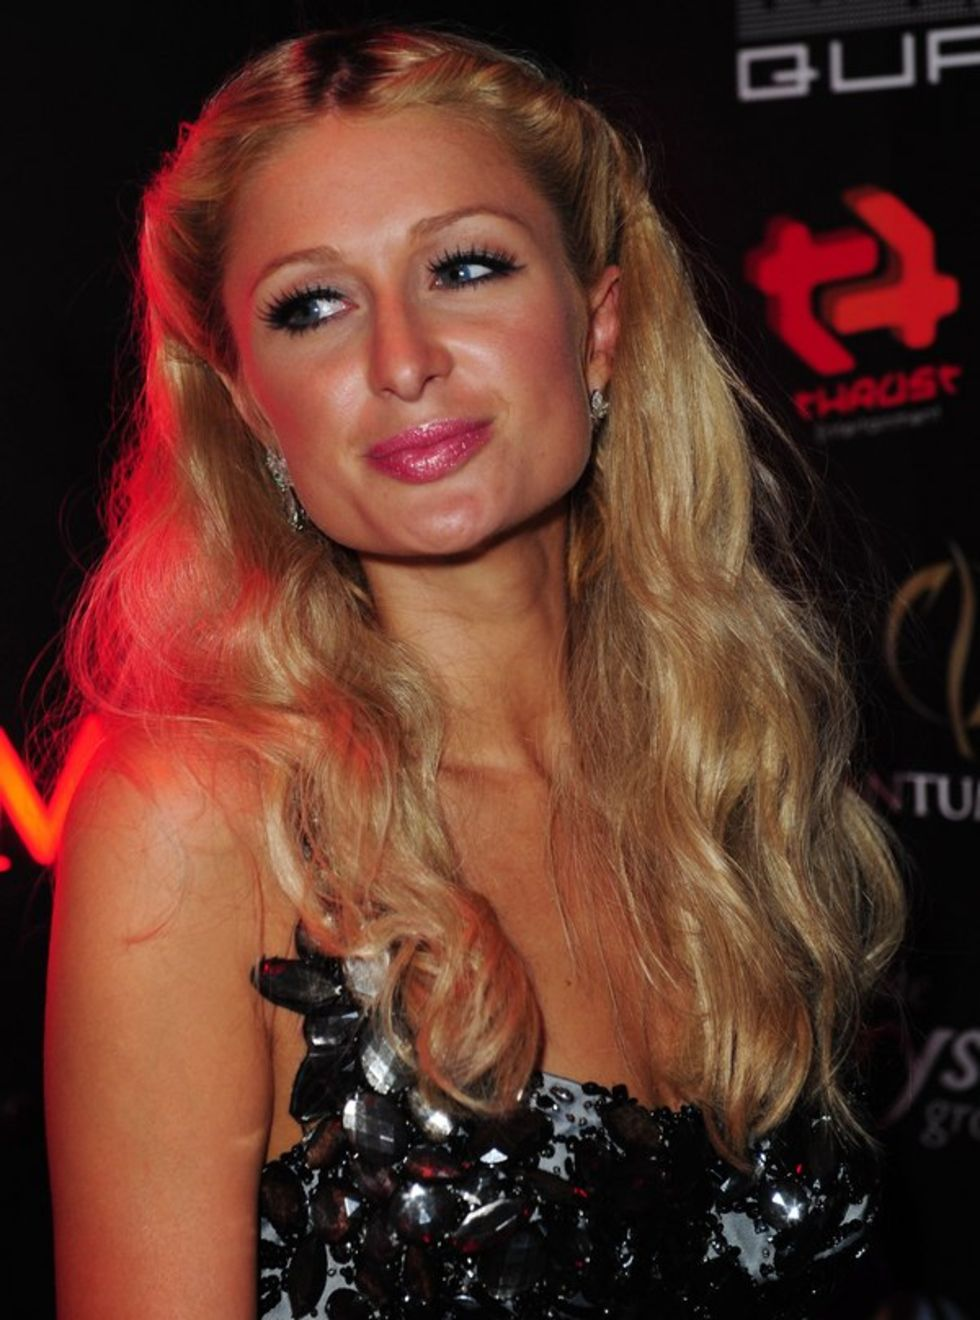 paris-hilton-at-the-quantum-night-club-in-dubai-mq-01